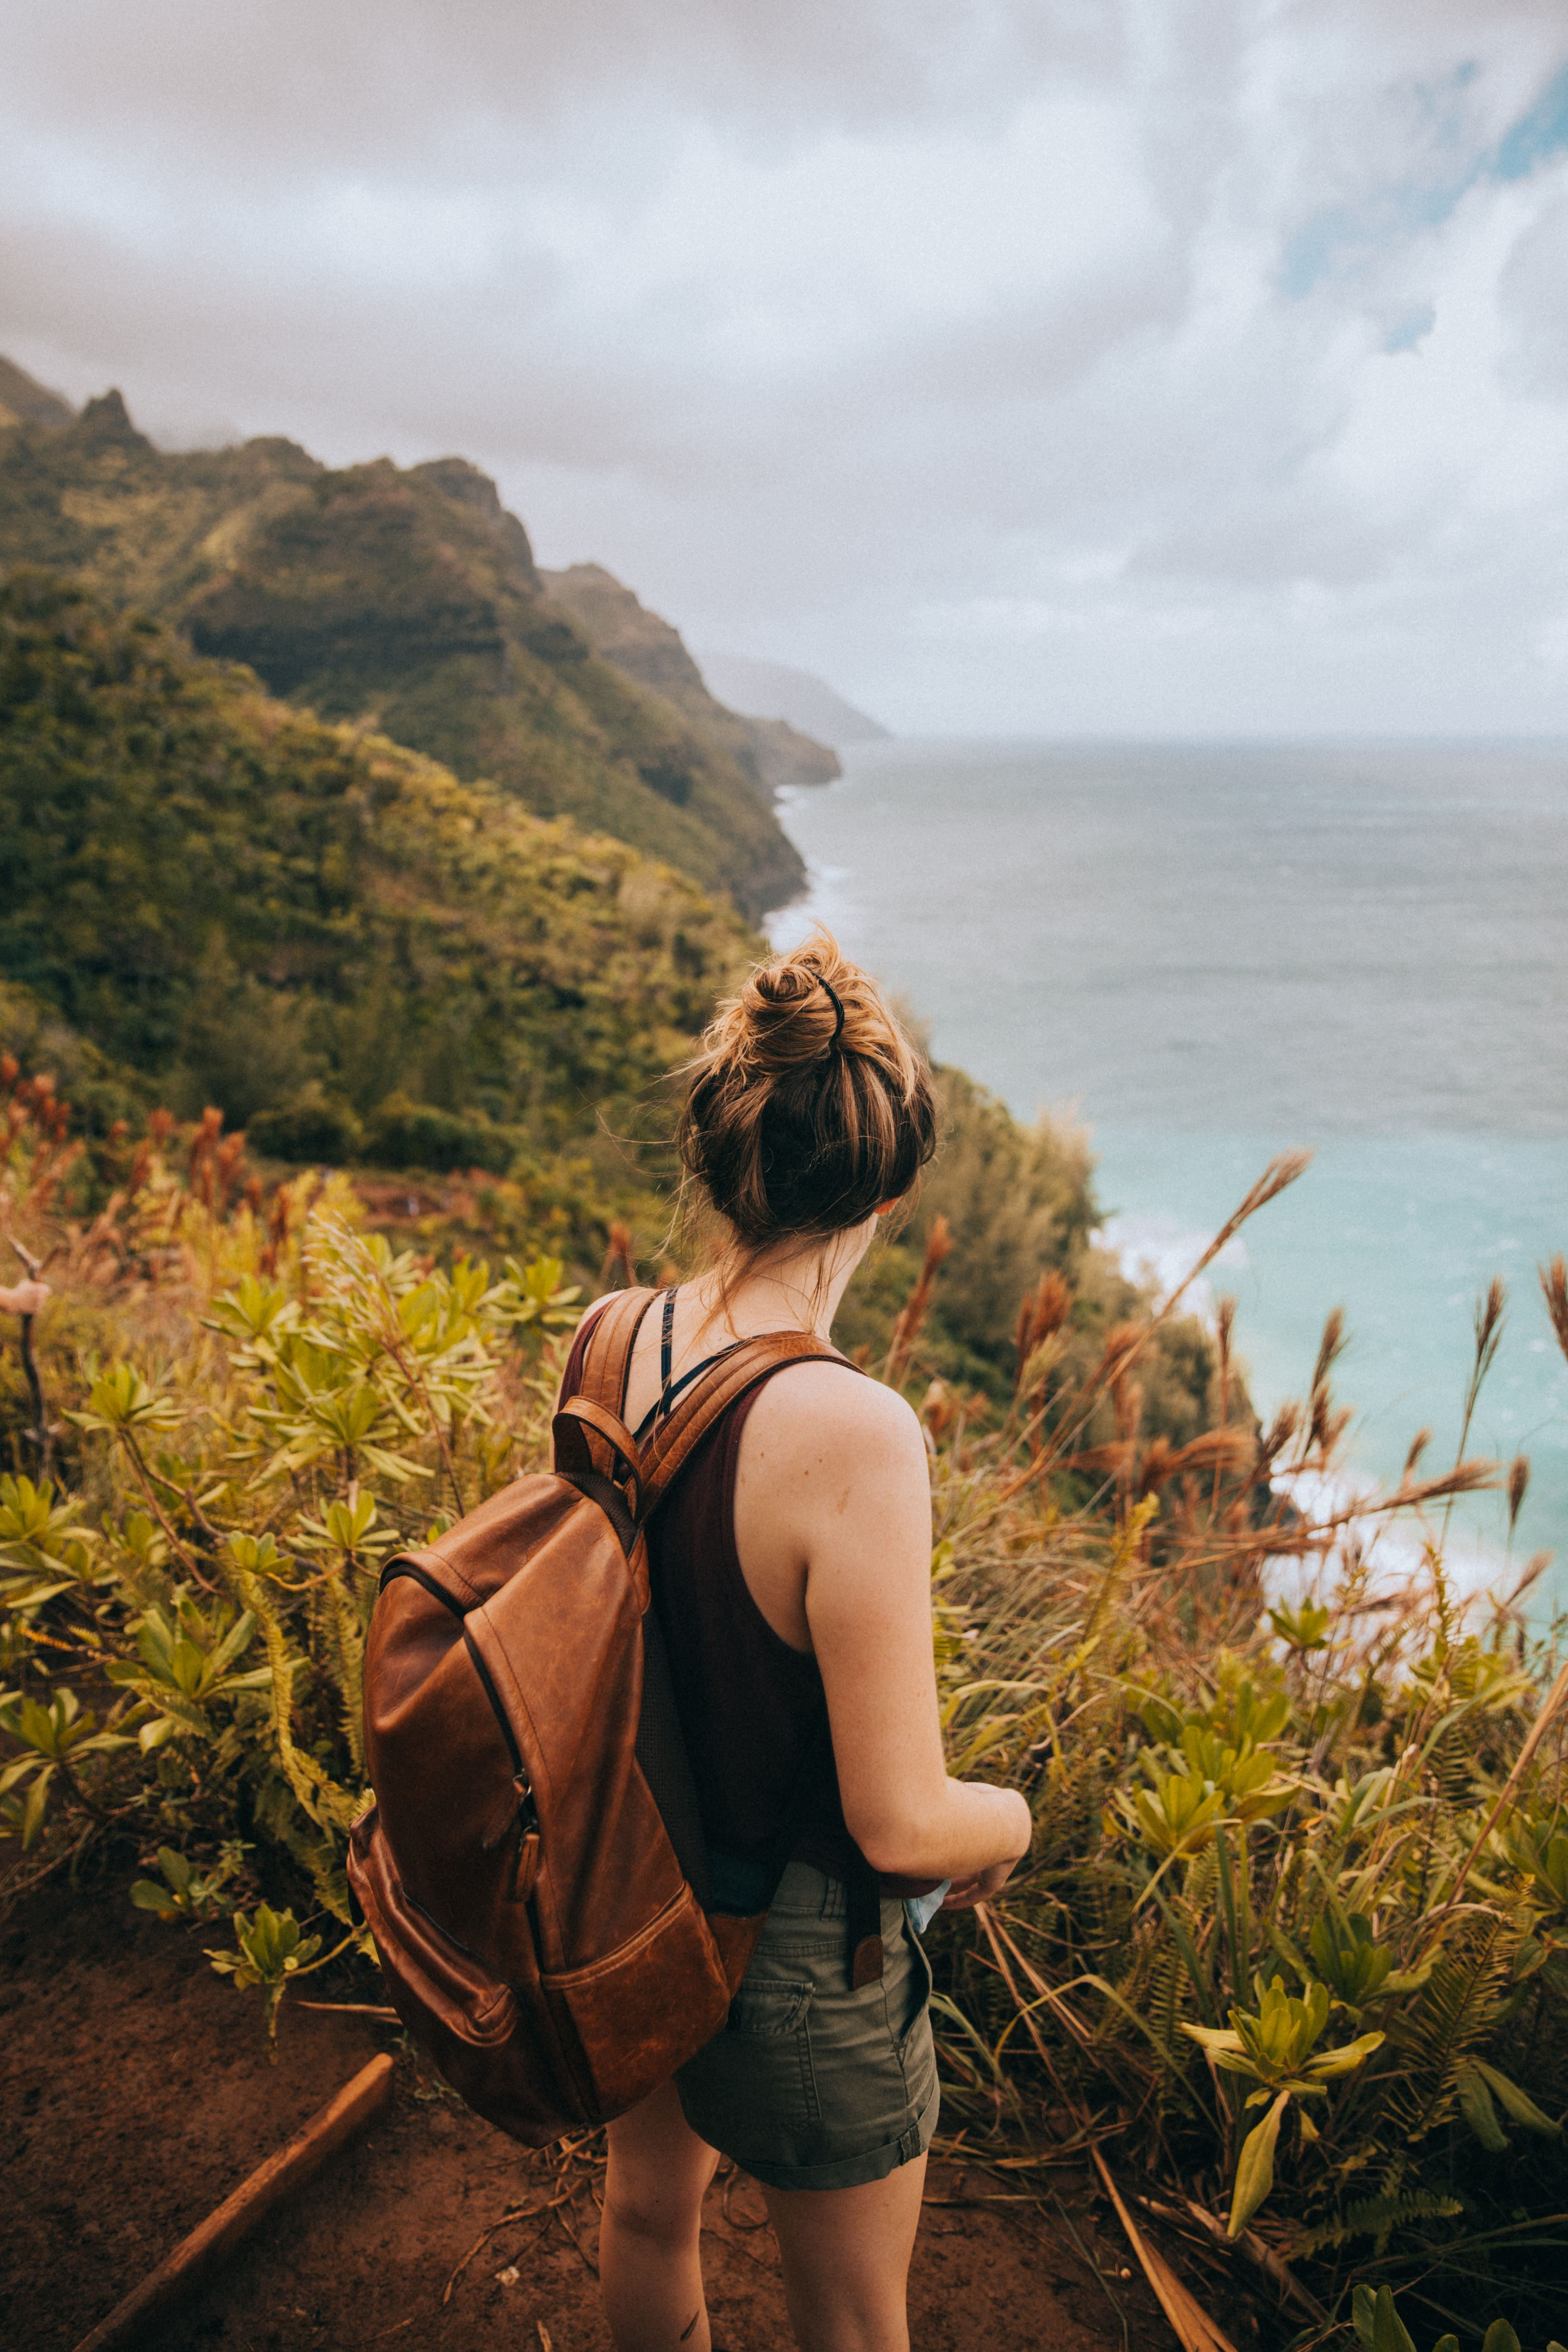 11 Adventurous Things To Do In Kauai, Hawaii - Need some ideas and ...